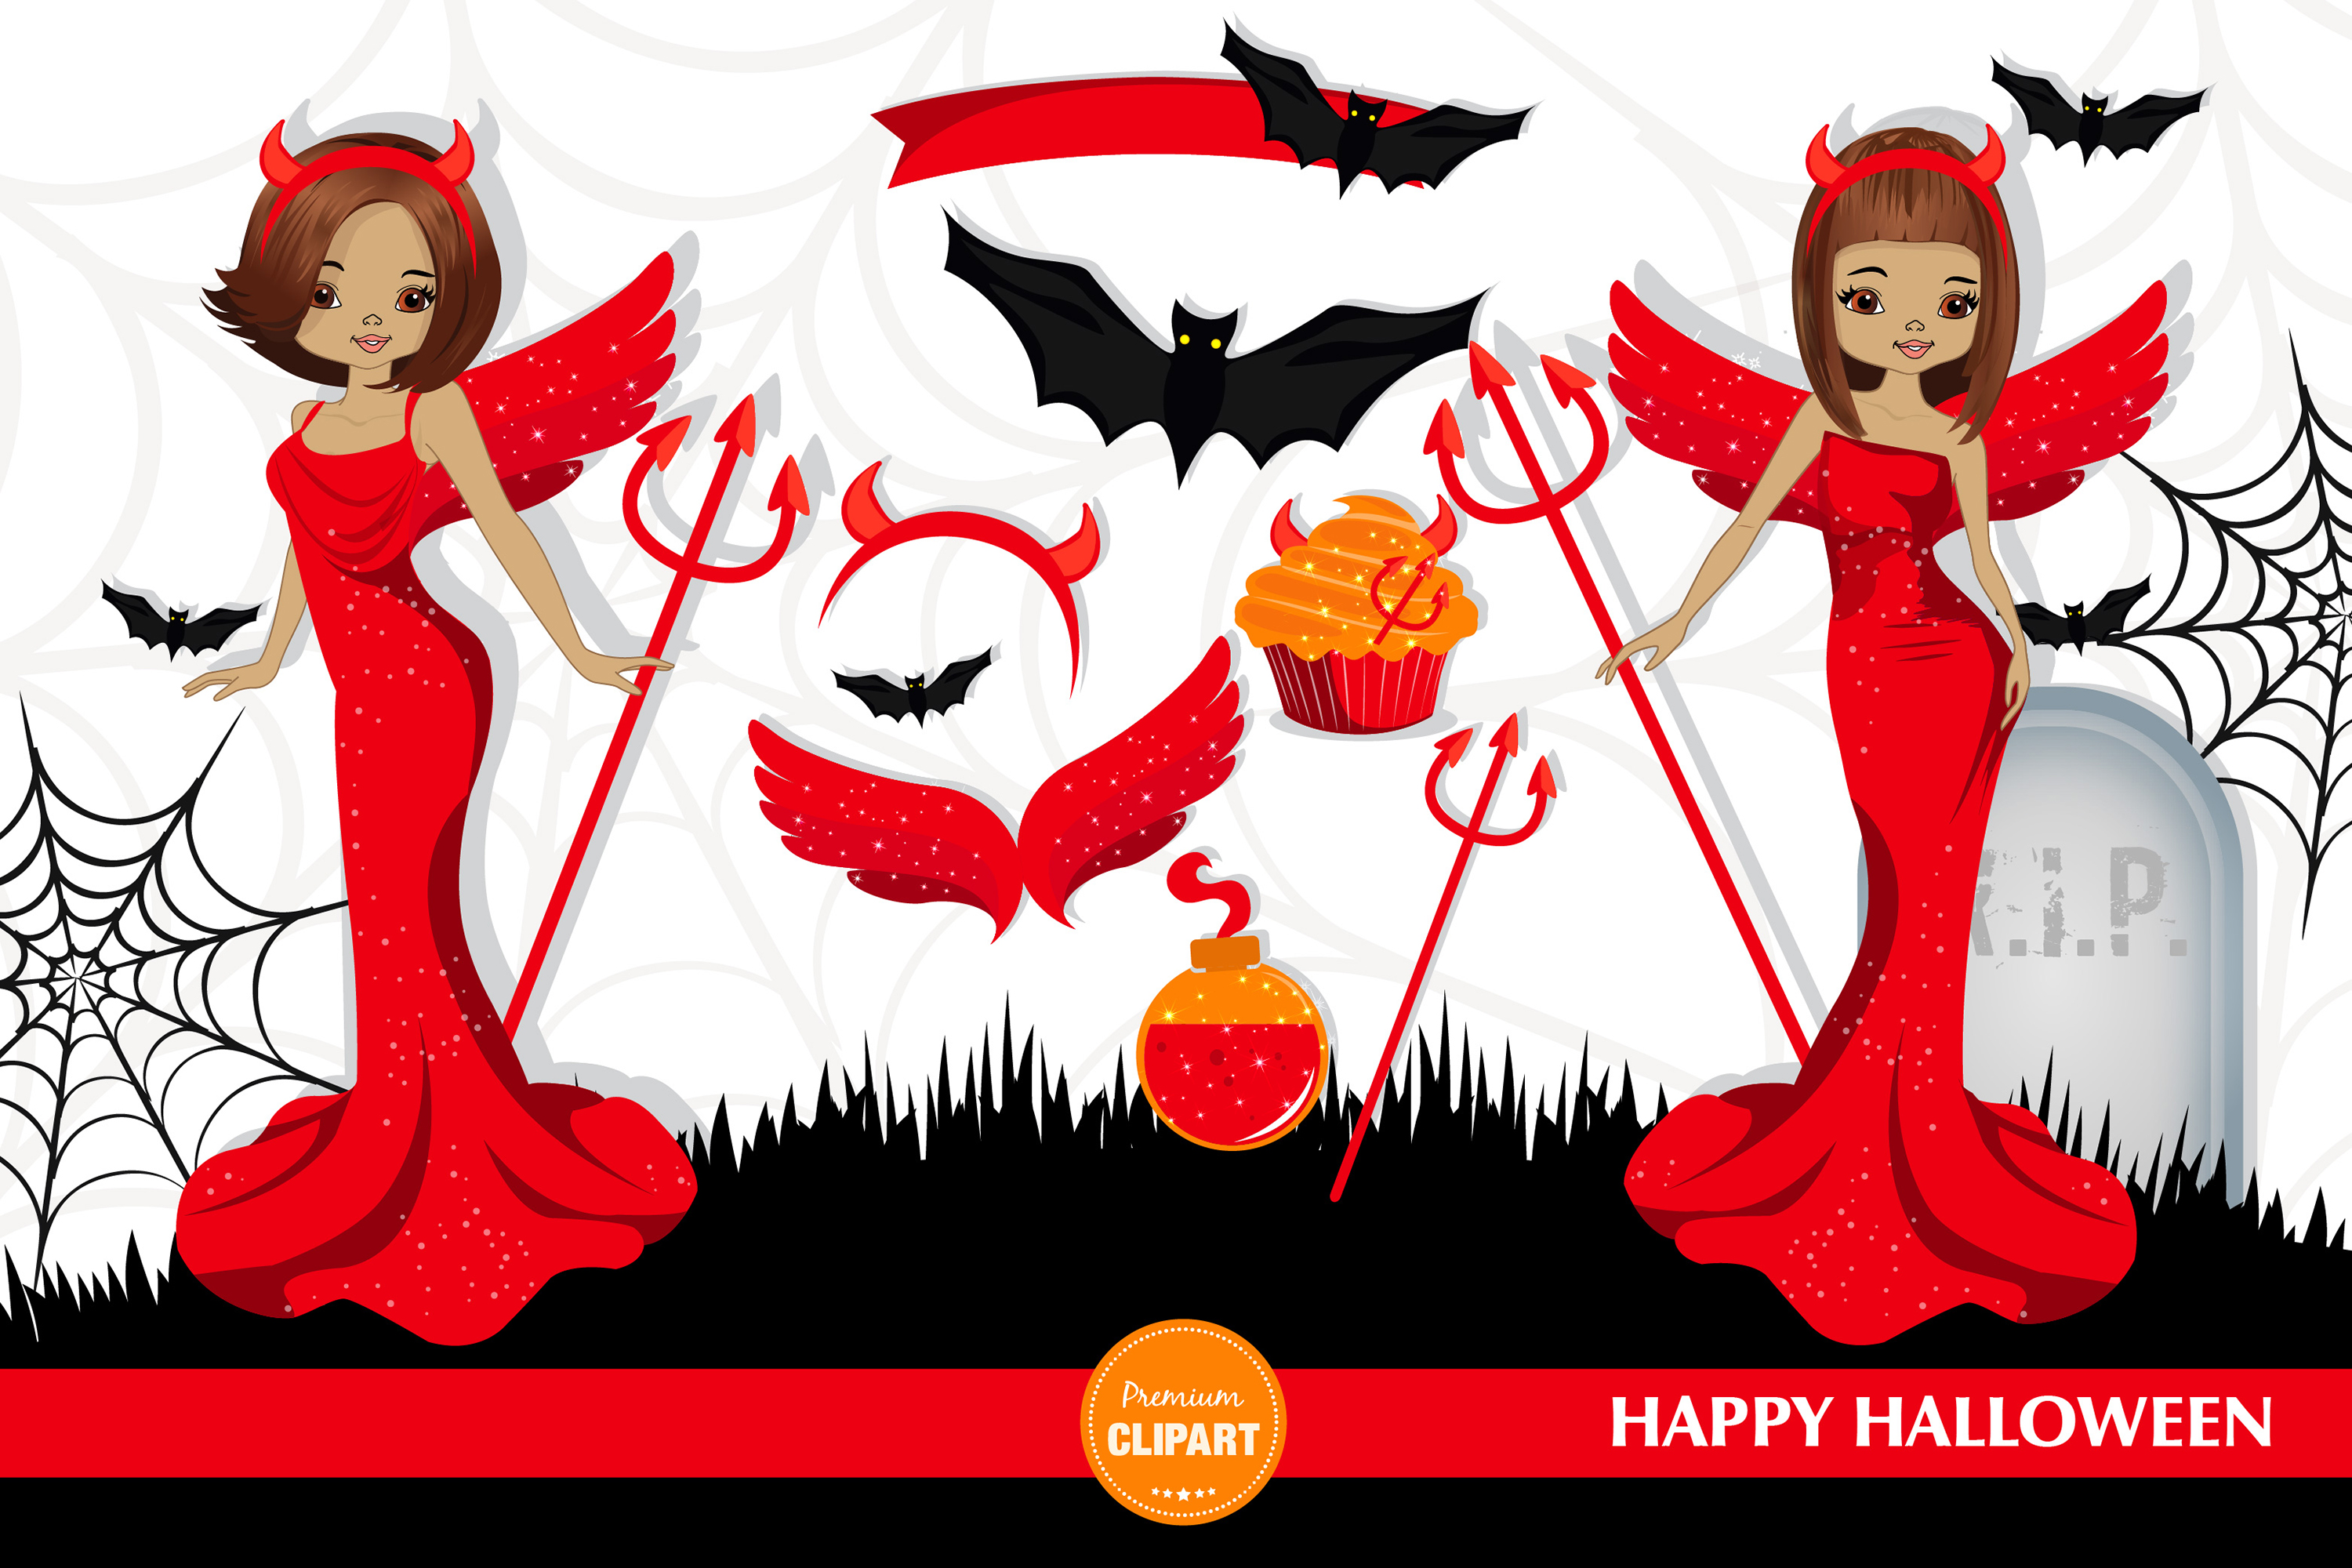 Halloween girl, Halloween illustrations, Halloween printable example image 2